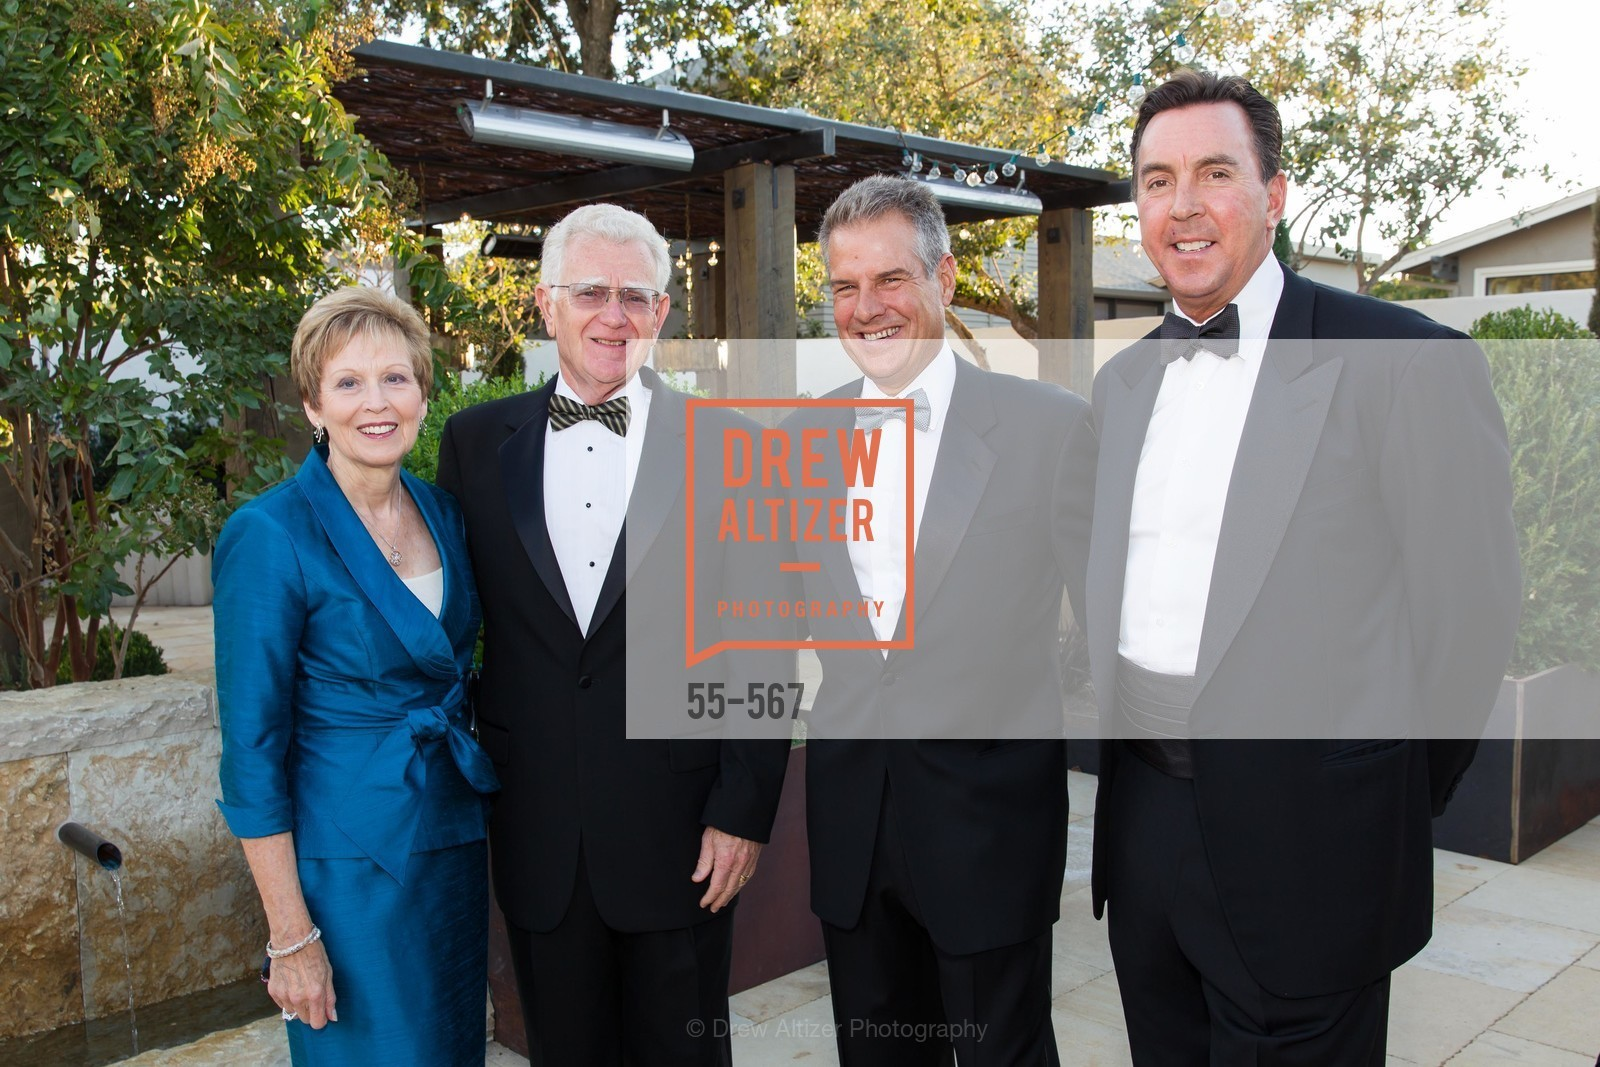 Linda Mahley, Bob Mahley, Bill Price, Will Evers, THREE STICKS WINES Inaugural Storehouse Supper With TYLER FLORENCE, US, September 13th, 2014,Drew Altizer, Drew Altizer Photography, full-service agency, private events, San Francisco photographer, photographer california